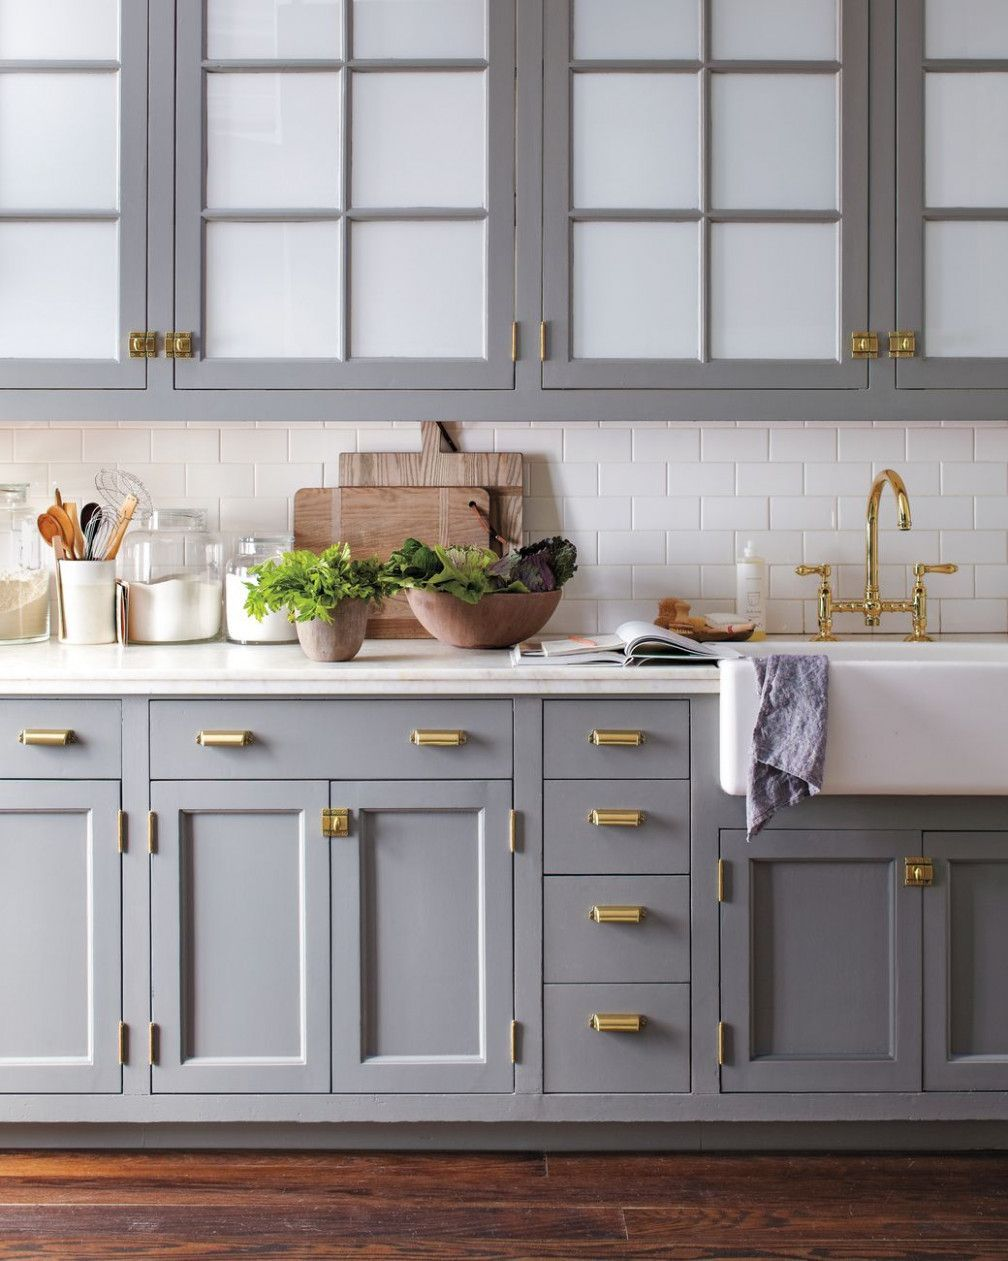 10 New Home Depot Kitchen Cabinet Colors Cabinet Colors Depot Home Kitchen In 2020 Kitchen Cabinets Color Combination Kitchen Cabinet Design Grey Kitchen Cabinets